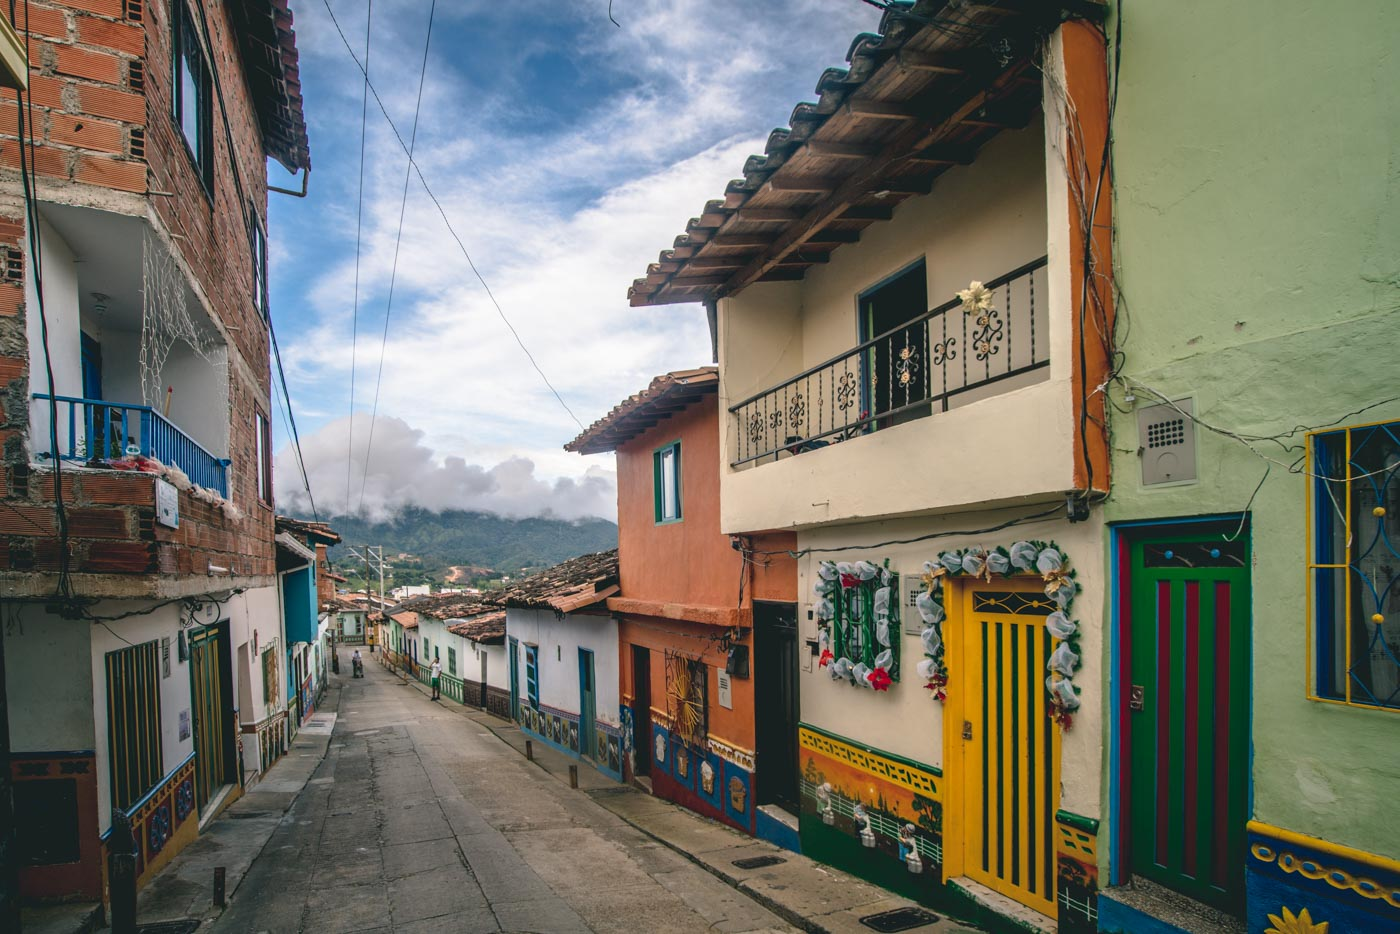 The town of Guatape, Medellin, Colombia